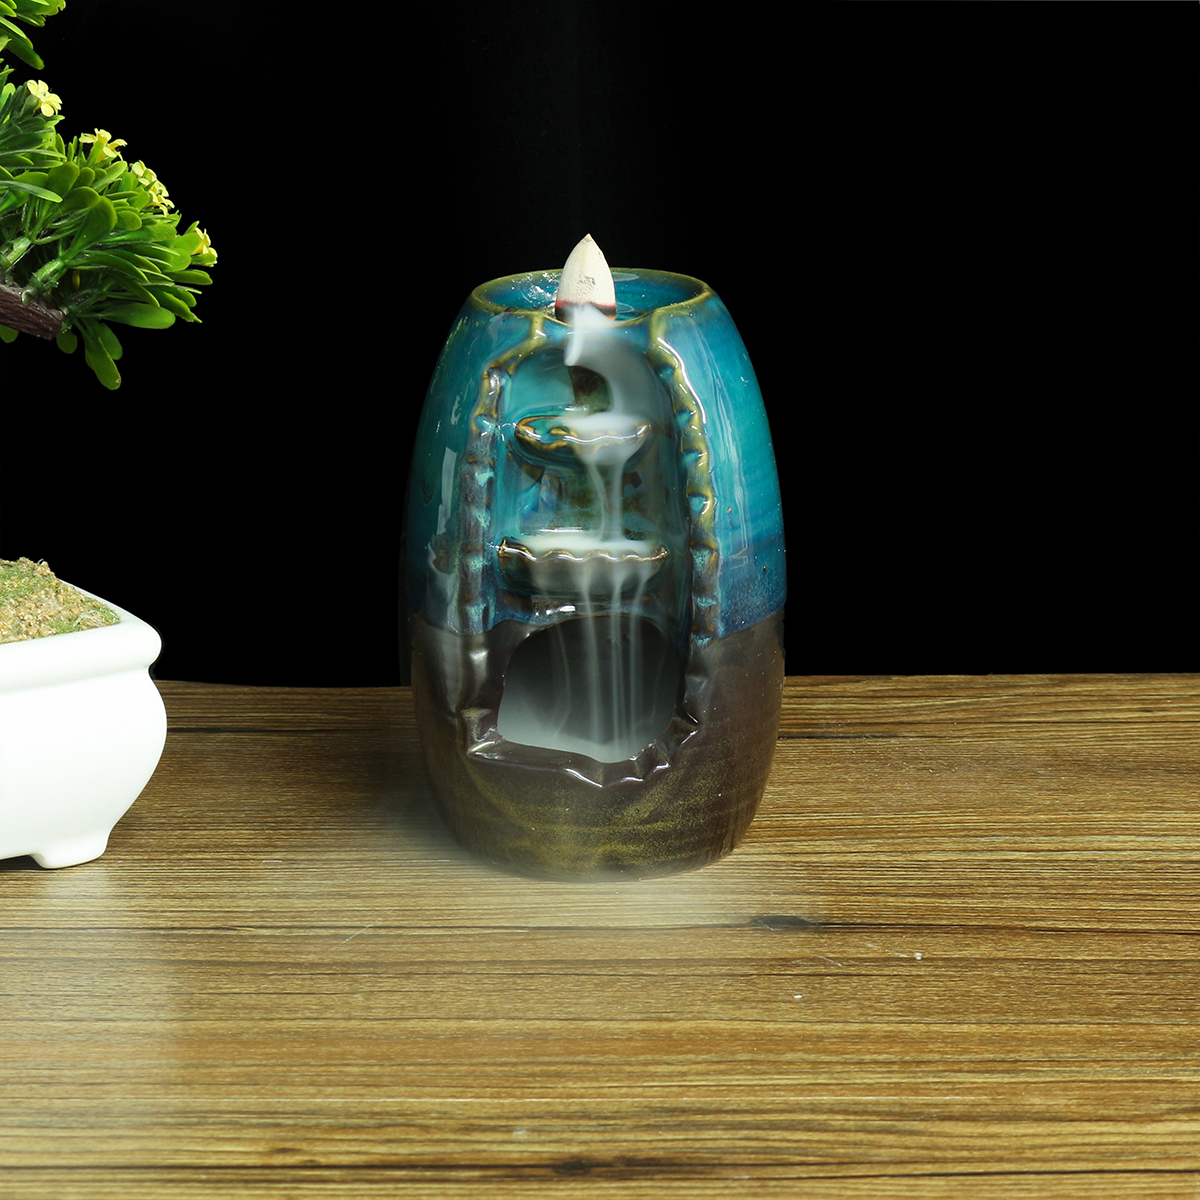 Ceramic Waterfall Smoke Backflow Incense Burner With Incense Cones Living Room Ornament Home Decor Walmart Canada